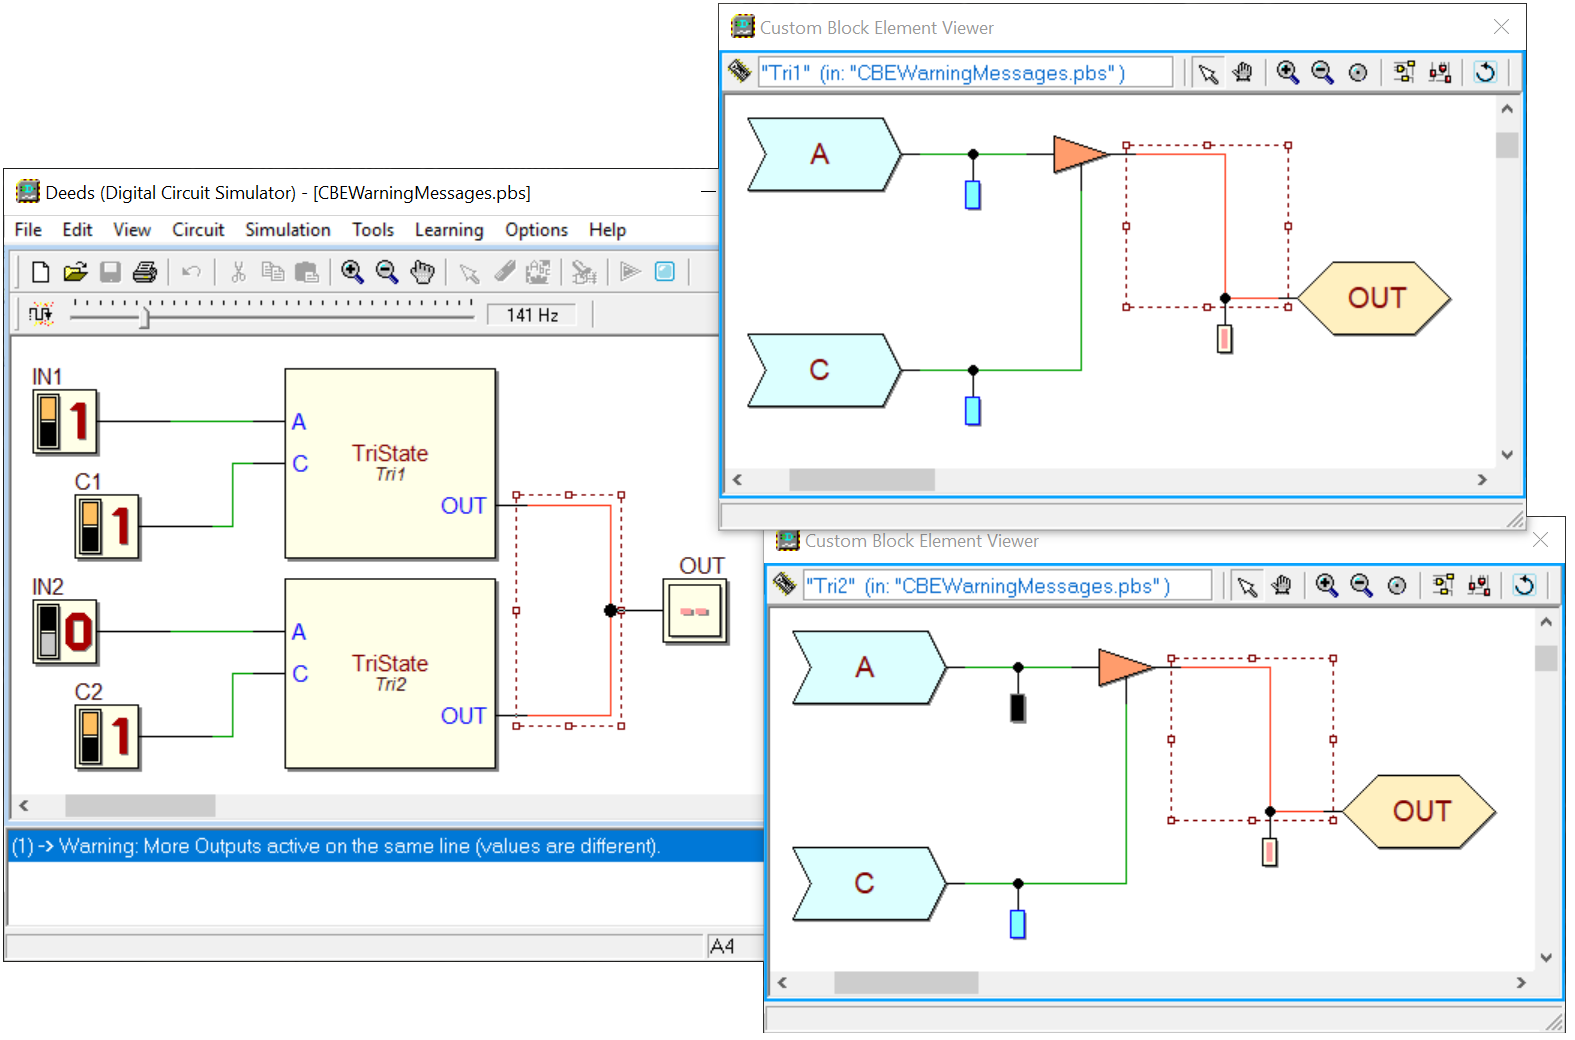 Deeds Version Notes Unfortunately The Diagrams Do Not Show Internal Circuitry Of Decoders